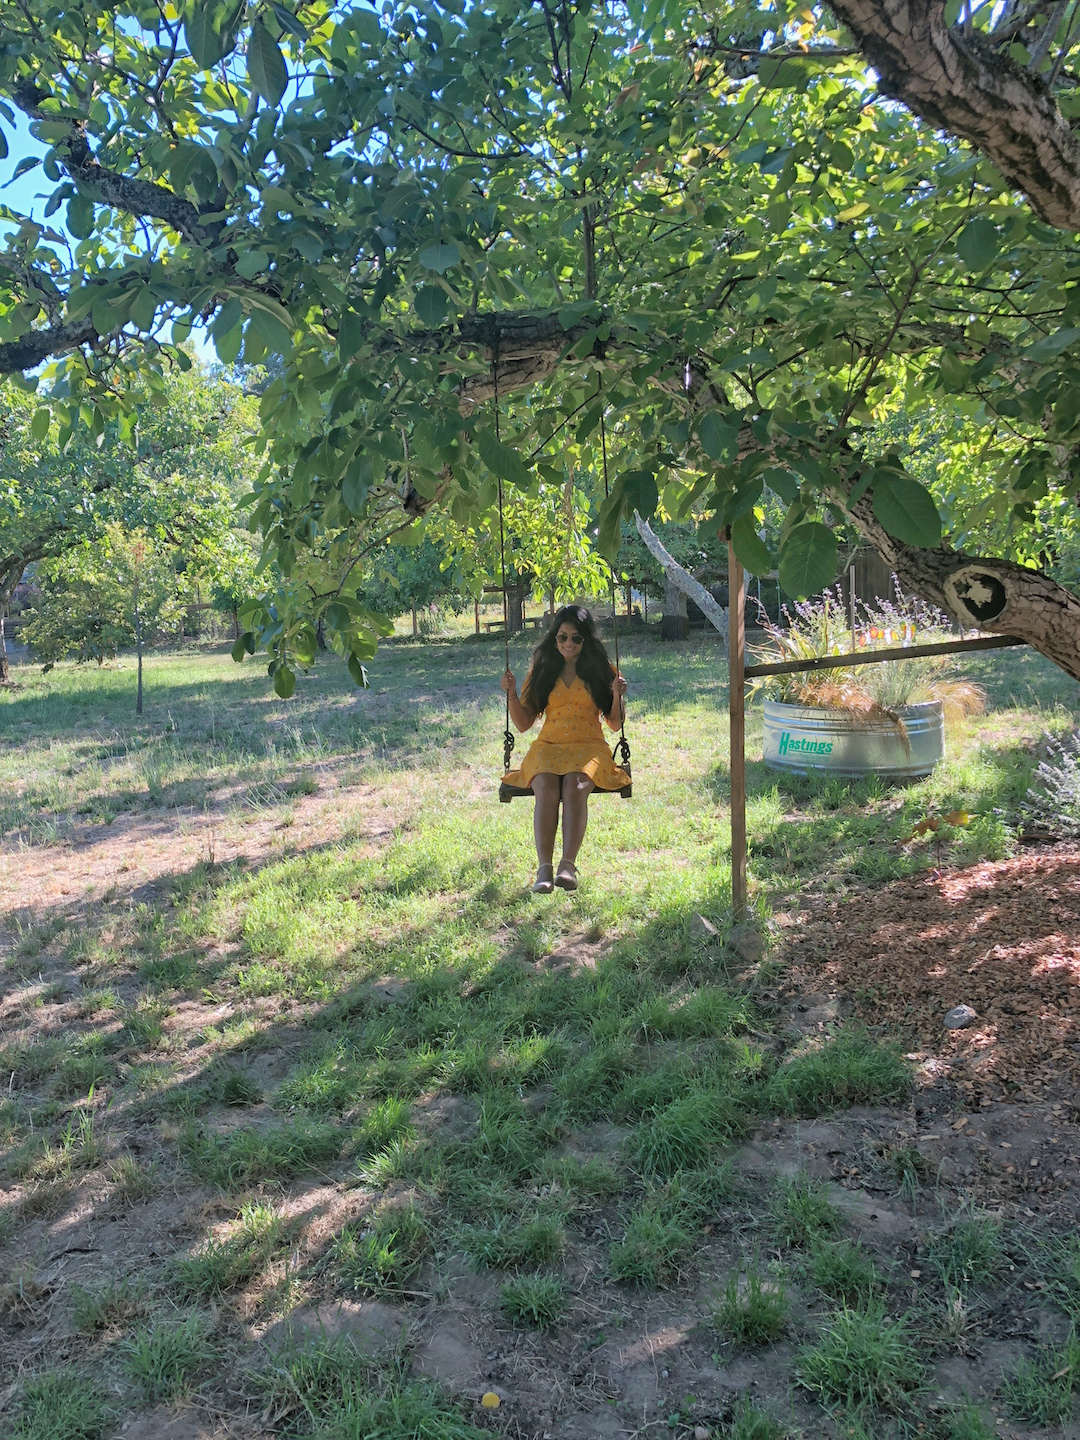 Swing in Little House in Orchard airbnb, Sonoma